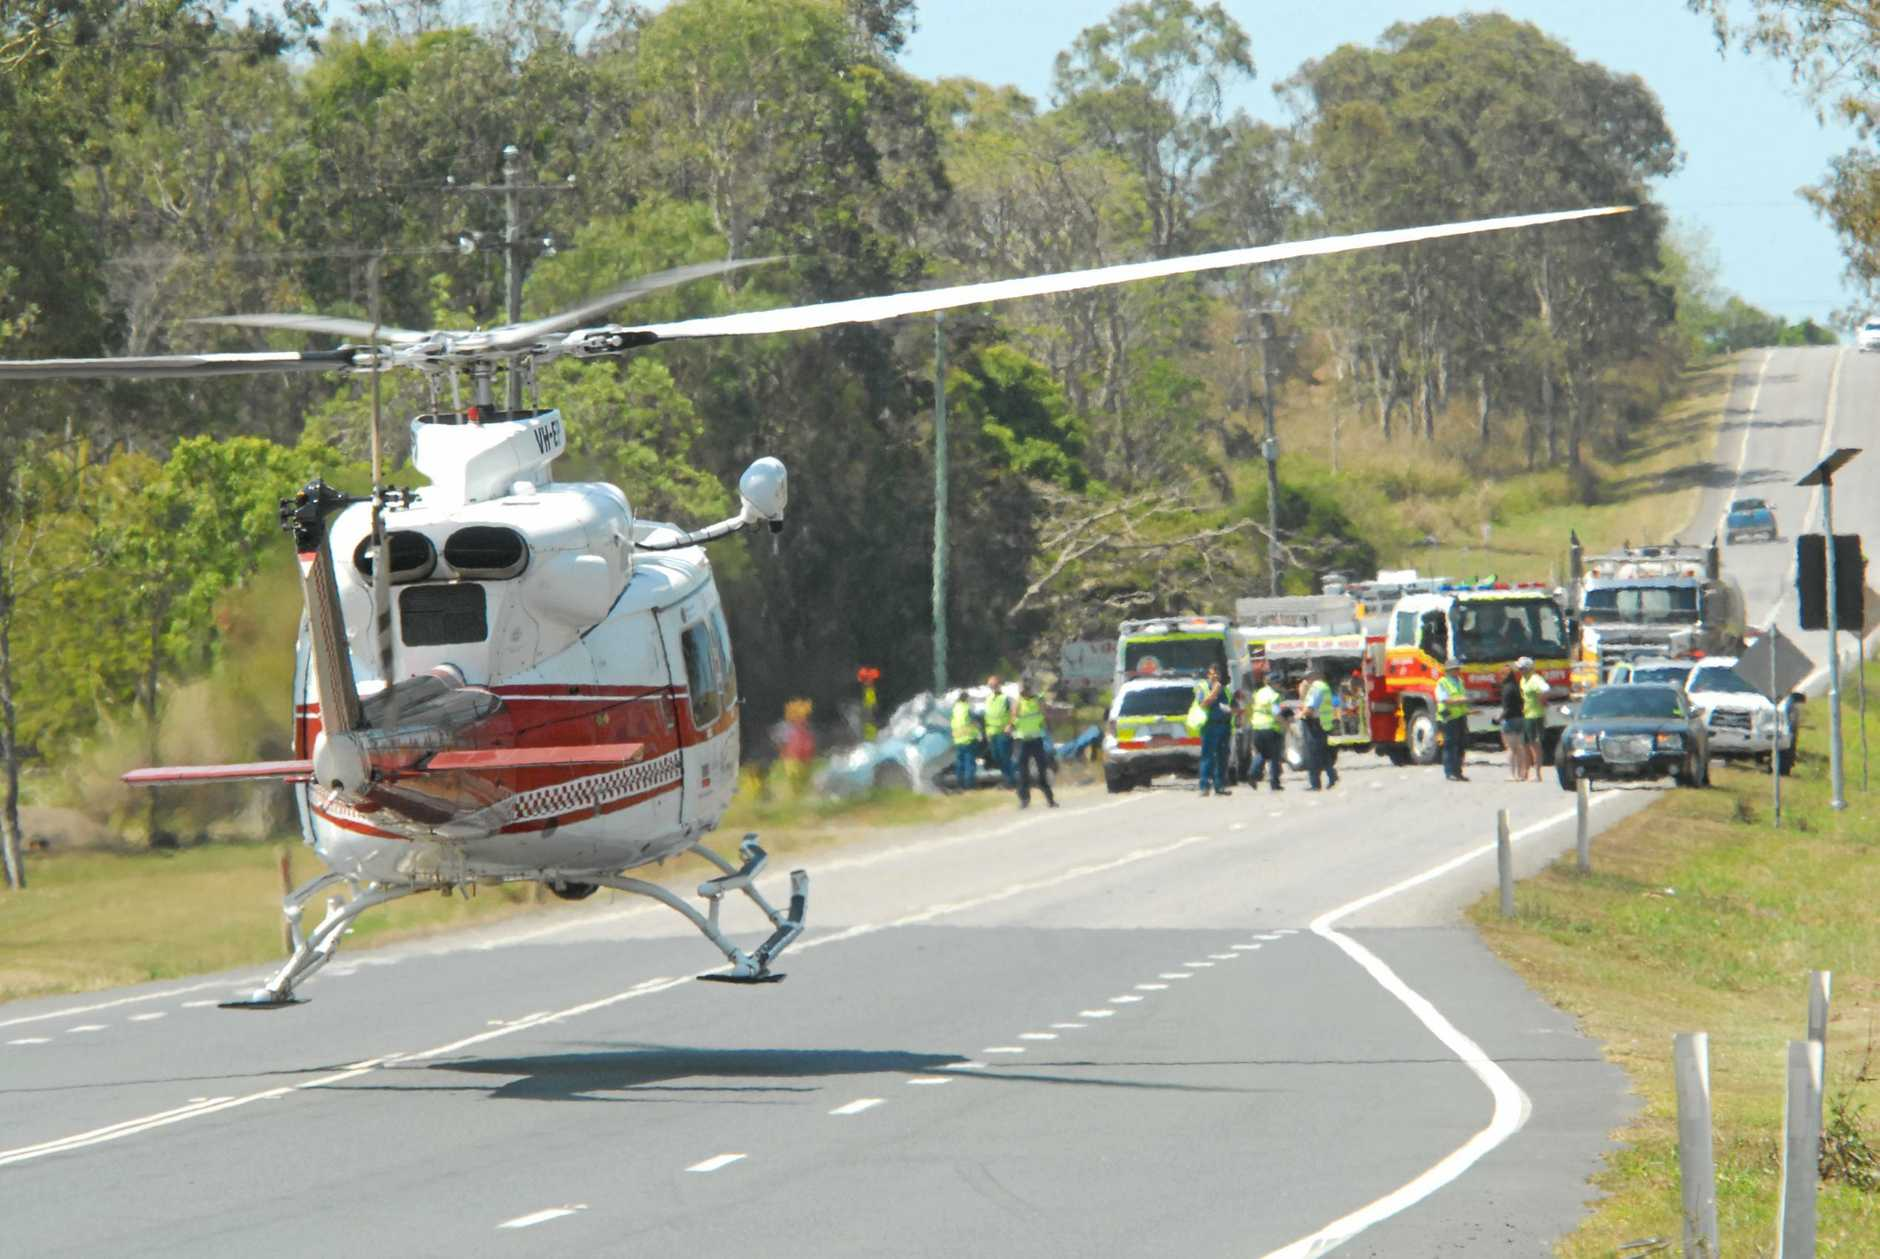 INQUEST: The RACQ CQ Rescue helicopter leaves the site of the fatal crash on the Peak Downs Highway at Greenmount, near Walkerston, on September 25, 2011.